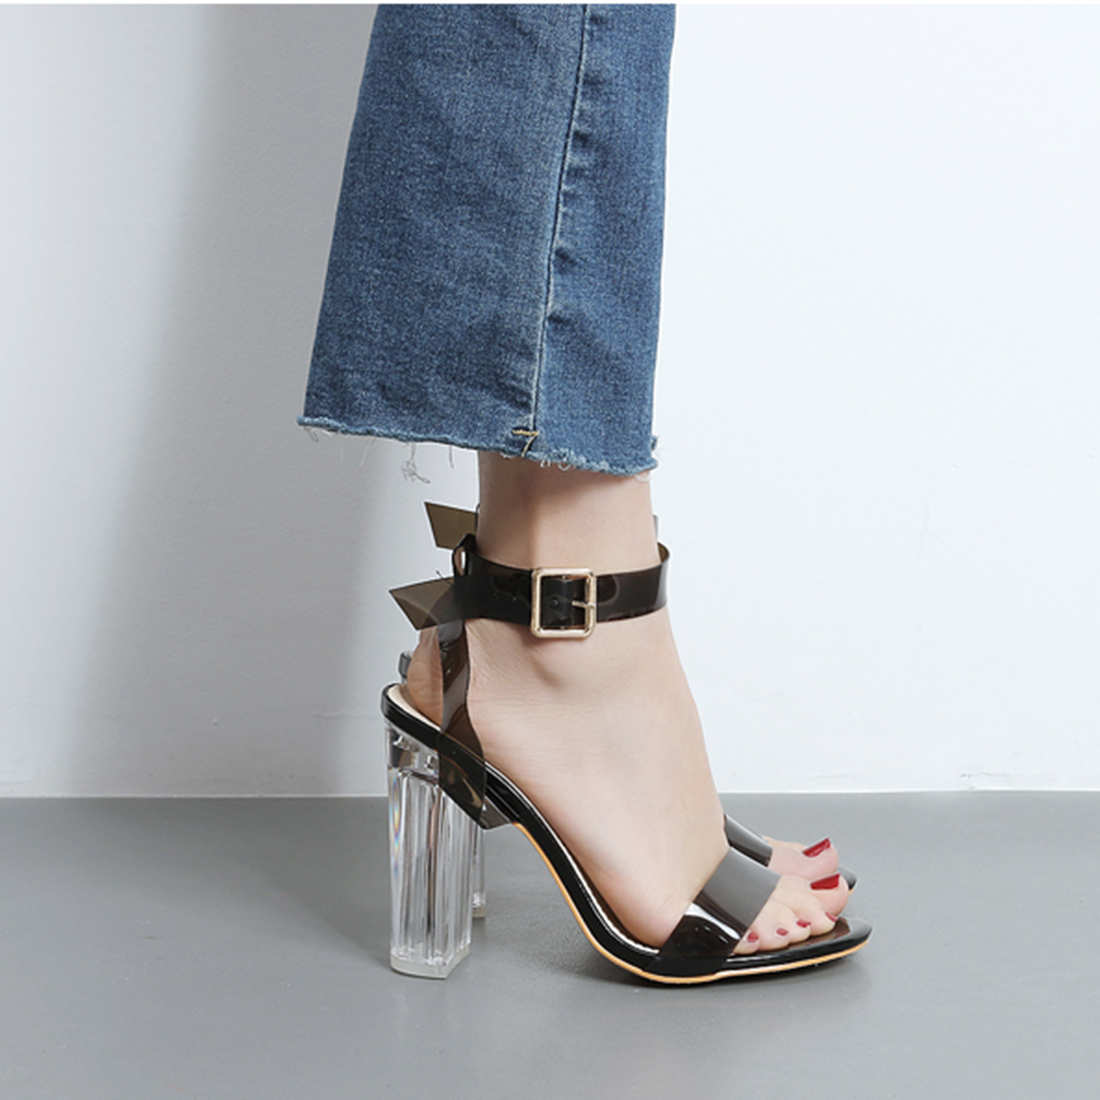 ФОТО Fashion Clear Transparent Ankle Strap Chunky High Heels Sandals Women Pumps Celebrity Wearing Strappy Buckle Sexy Shoes